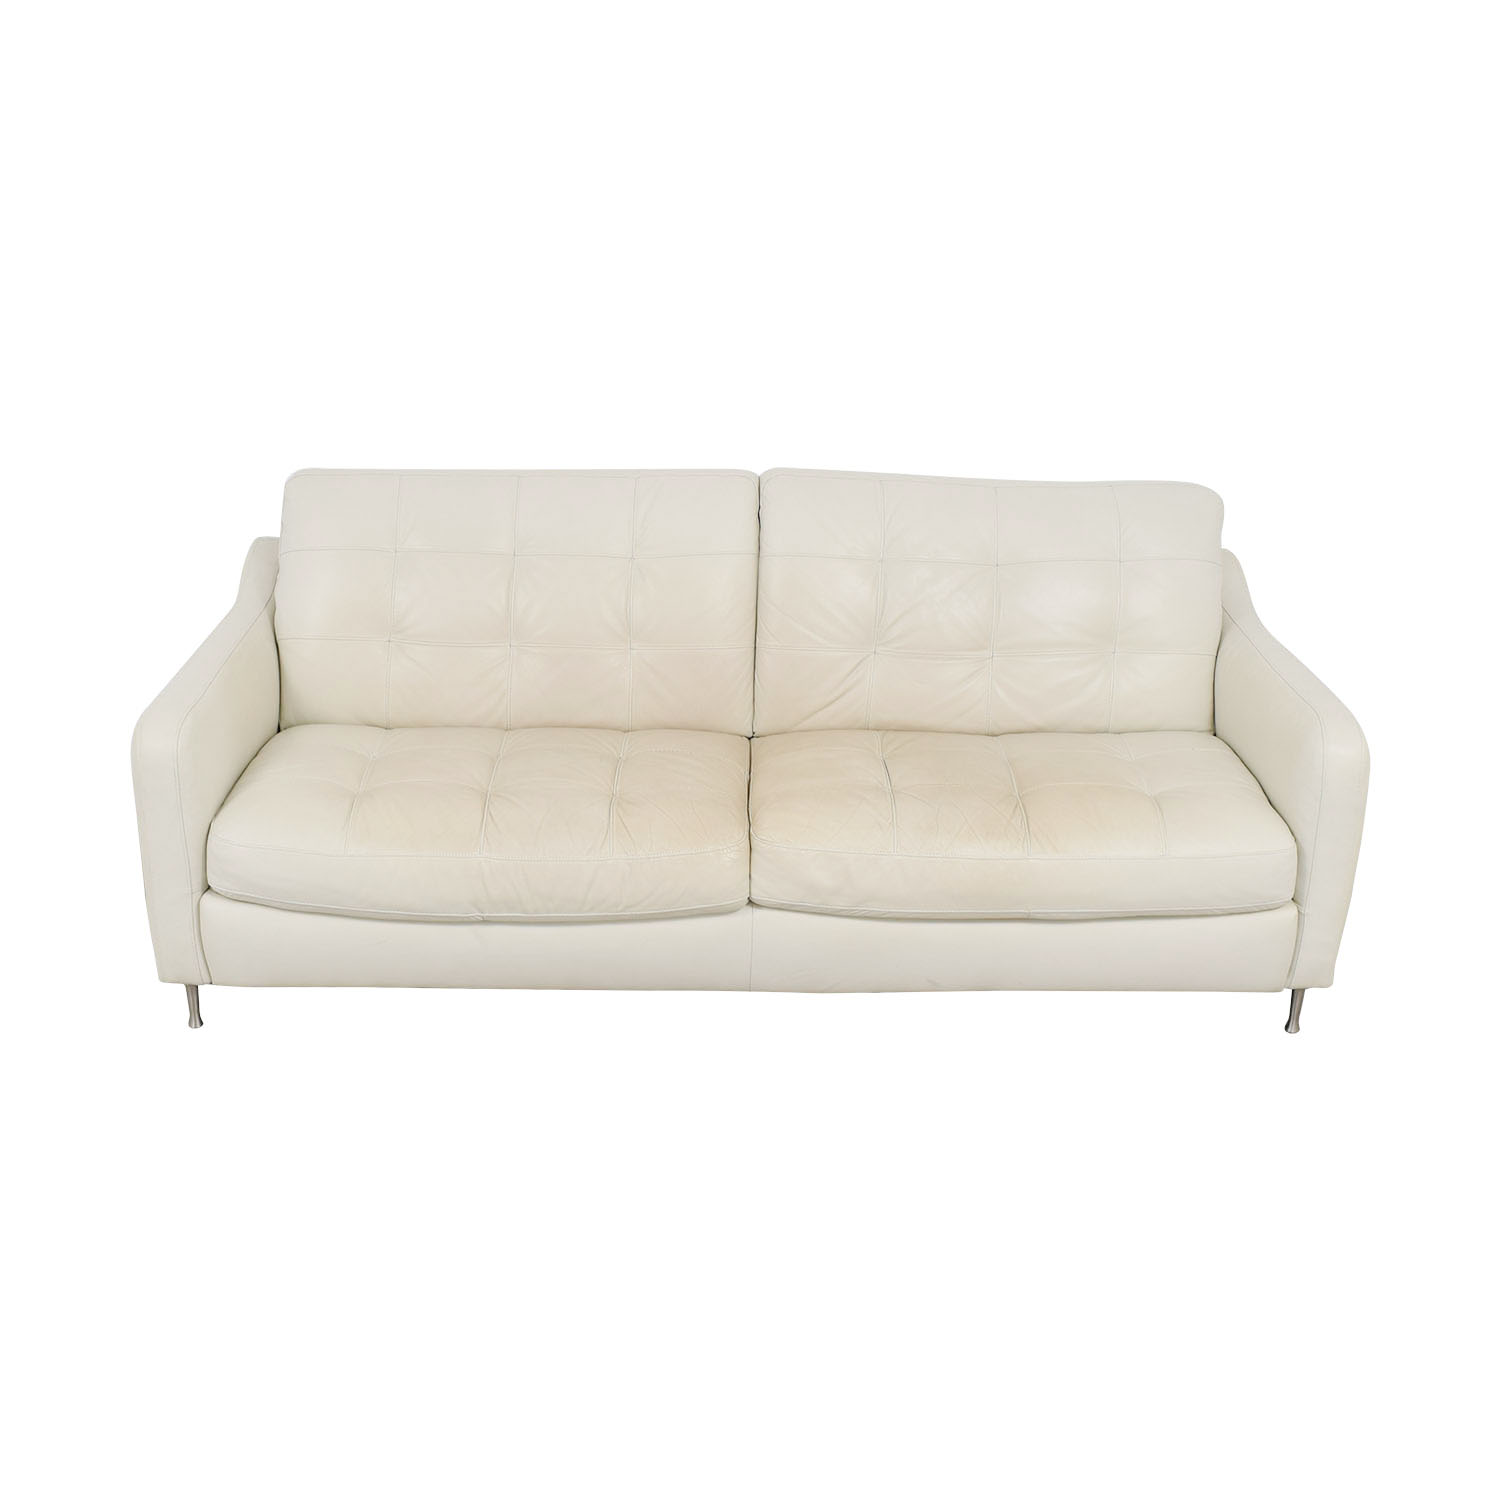 tufted leather sofa cheap suede slipcover sale